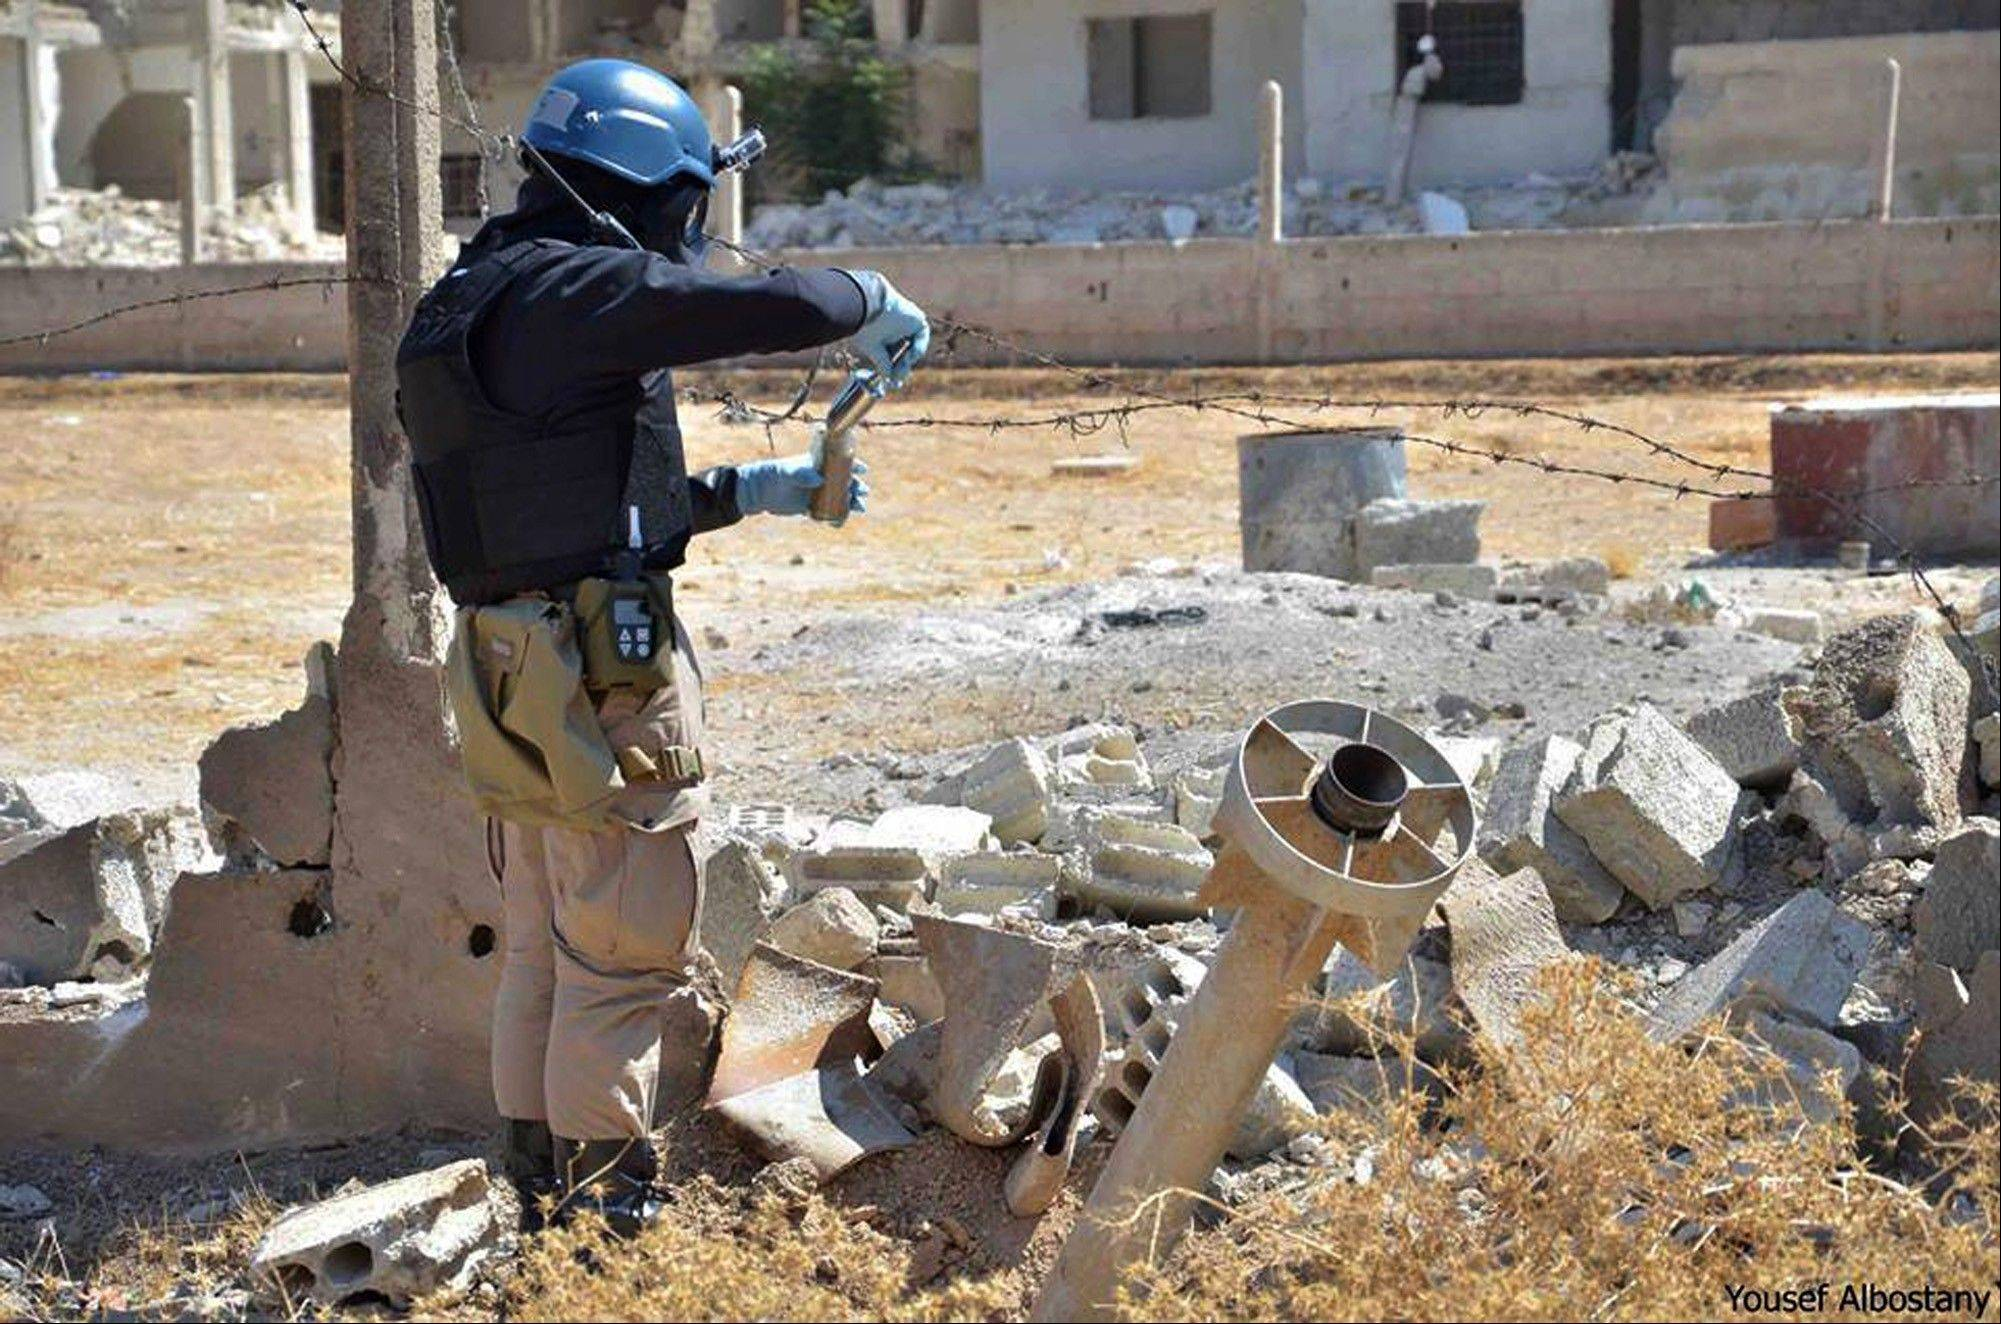 A member of UN investigation team takes samples of sand in areas struck by a purported poison gas attack last week outside Damascus in Syria.